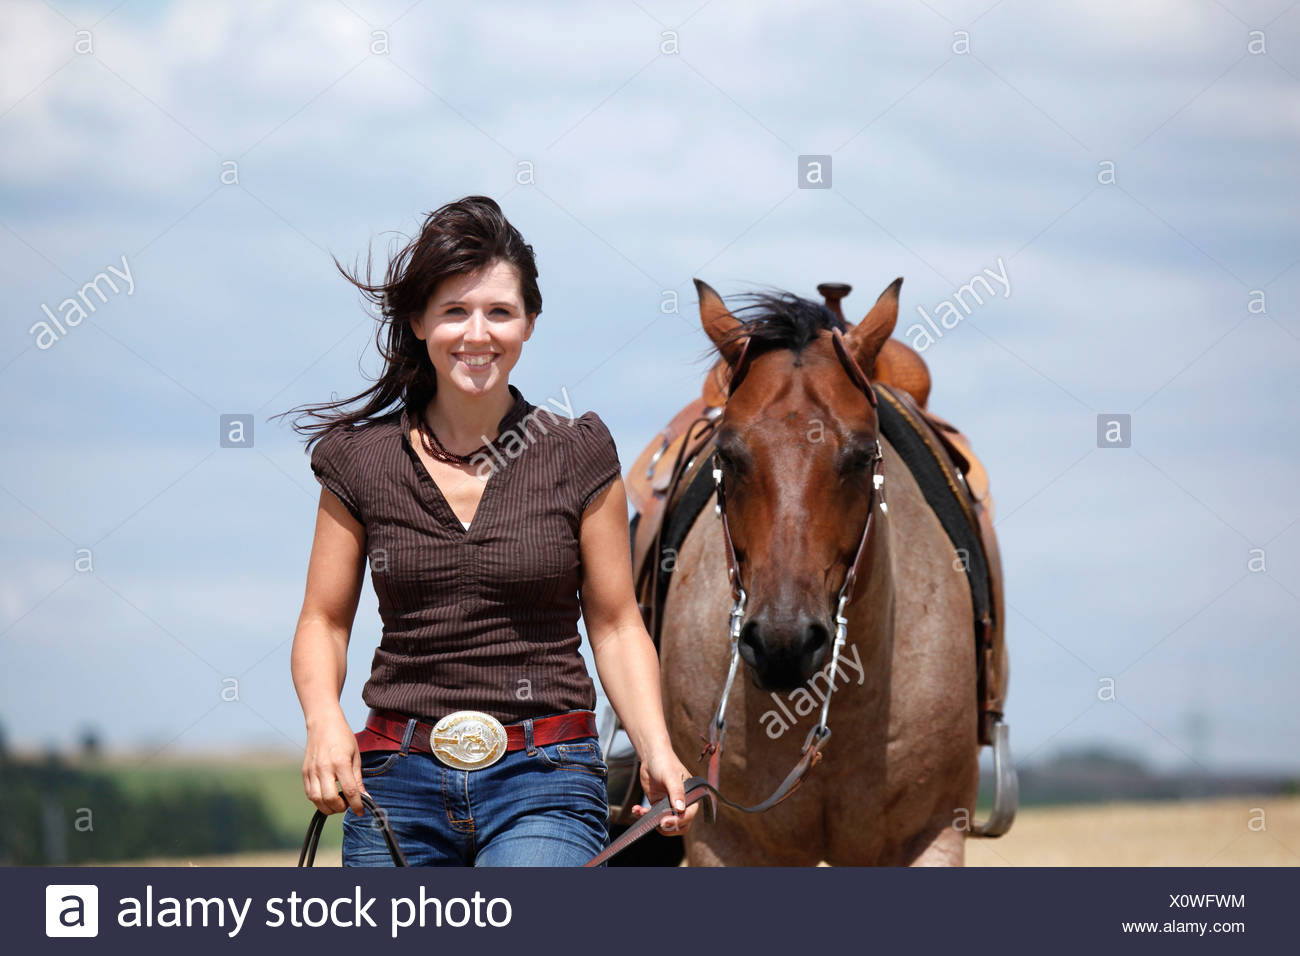 western riding horsewoman - Stock Image